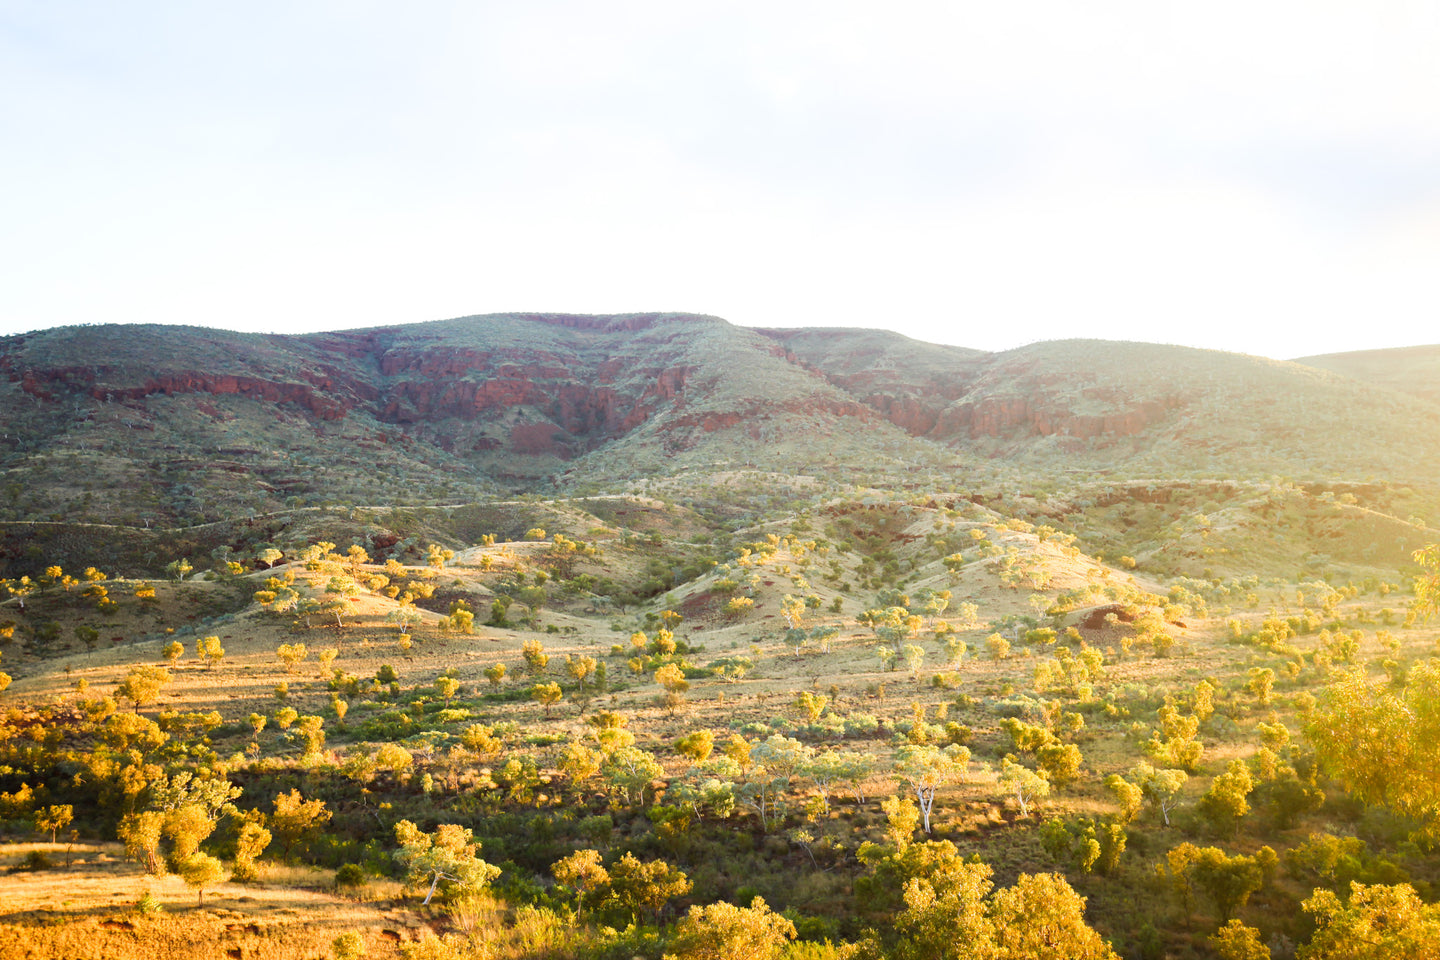 Munjina gorge at sunrise, pilbara